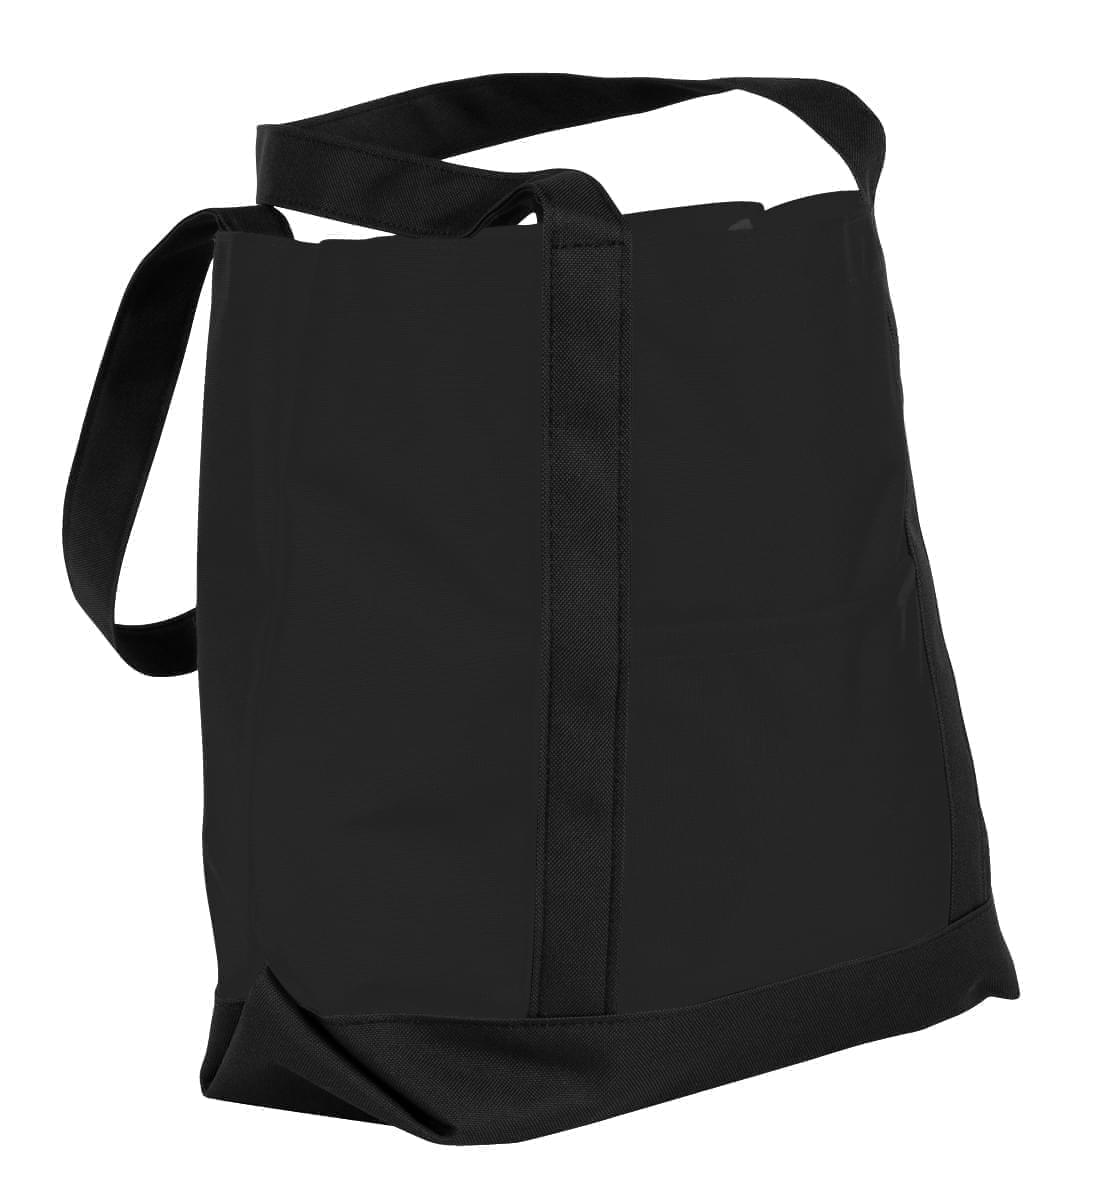 USA Made Canvas Fashion Tote Bags, Black-Black, XAACL1UAHC